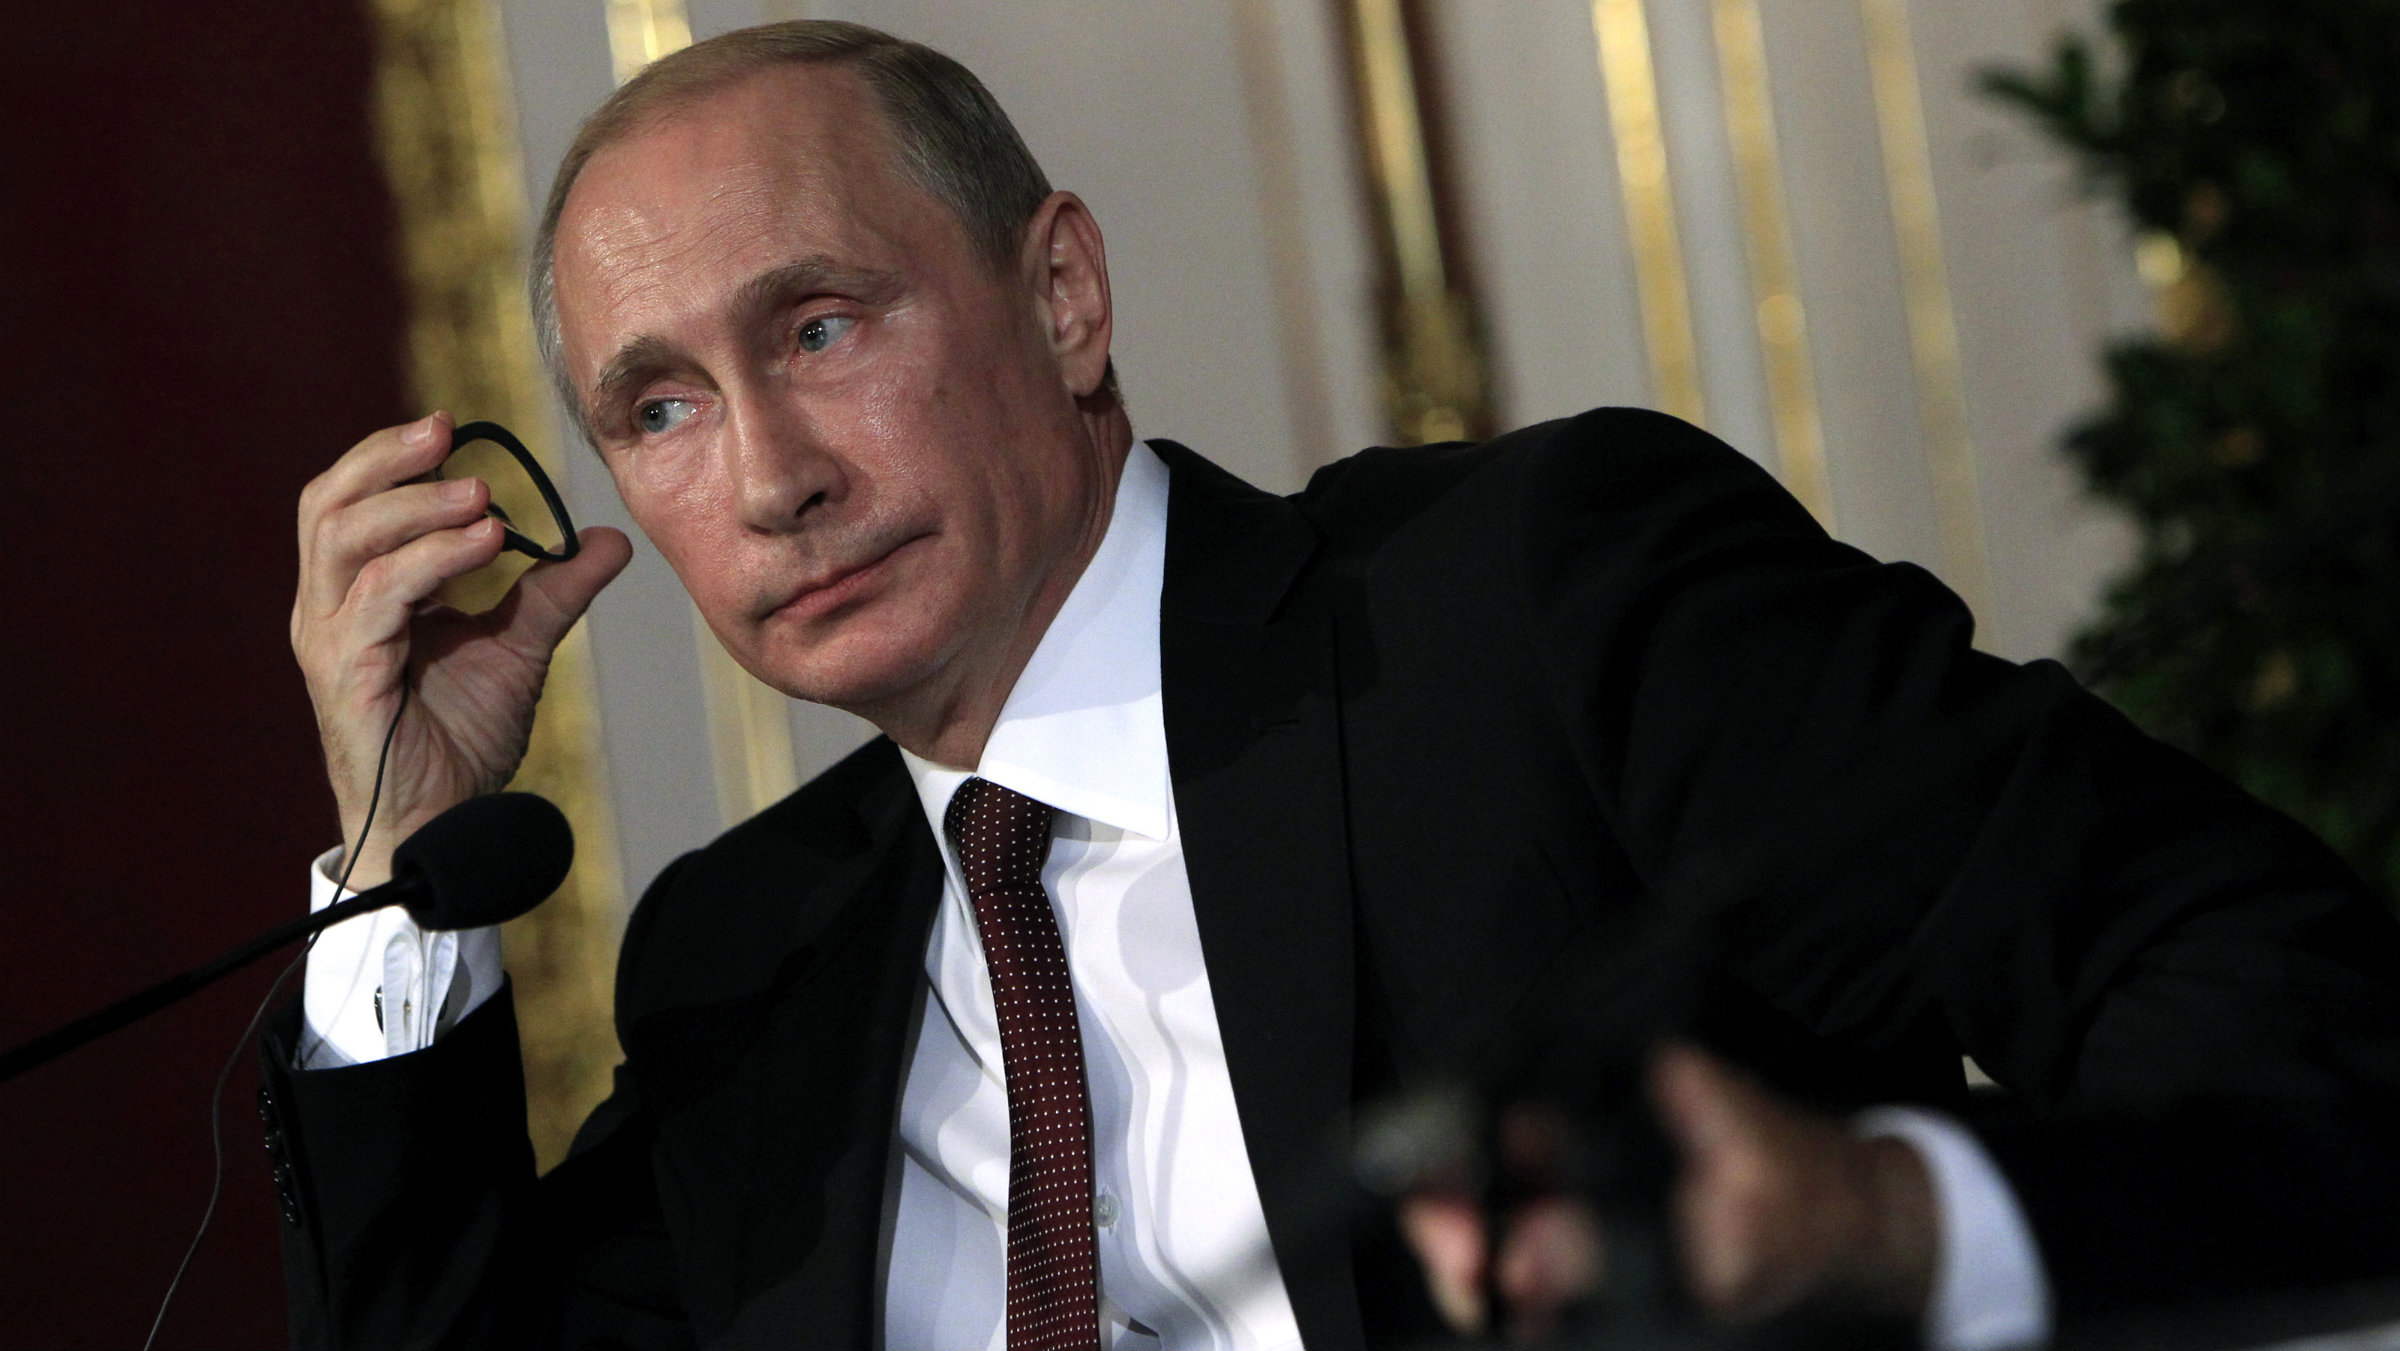 Russian president Vladimir Putin listens to a question in a news conference June 24 in Austria.